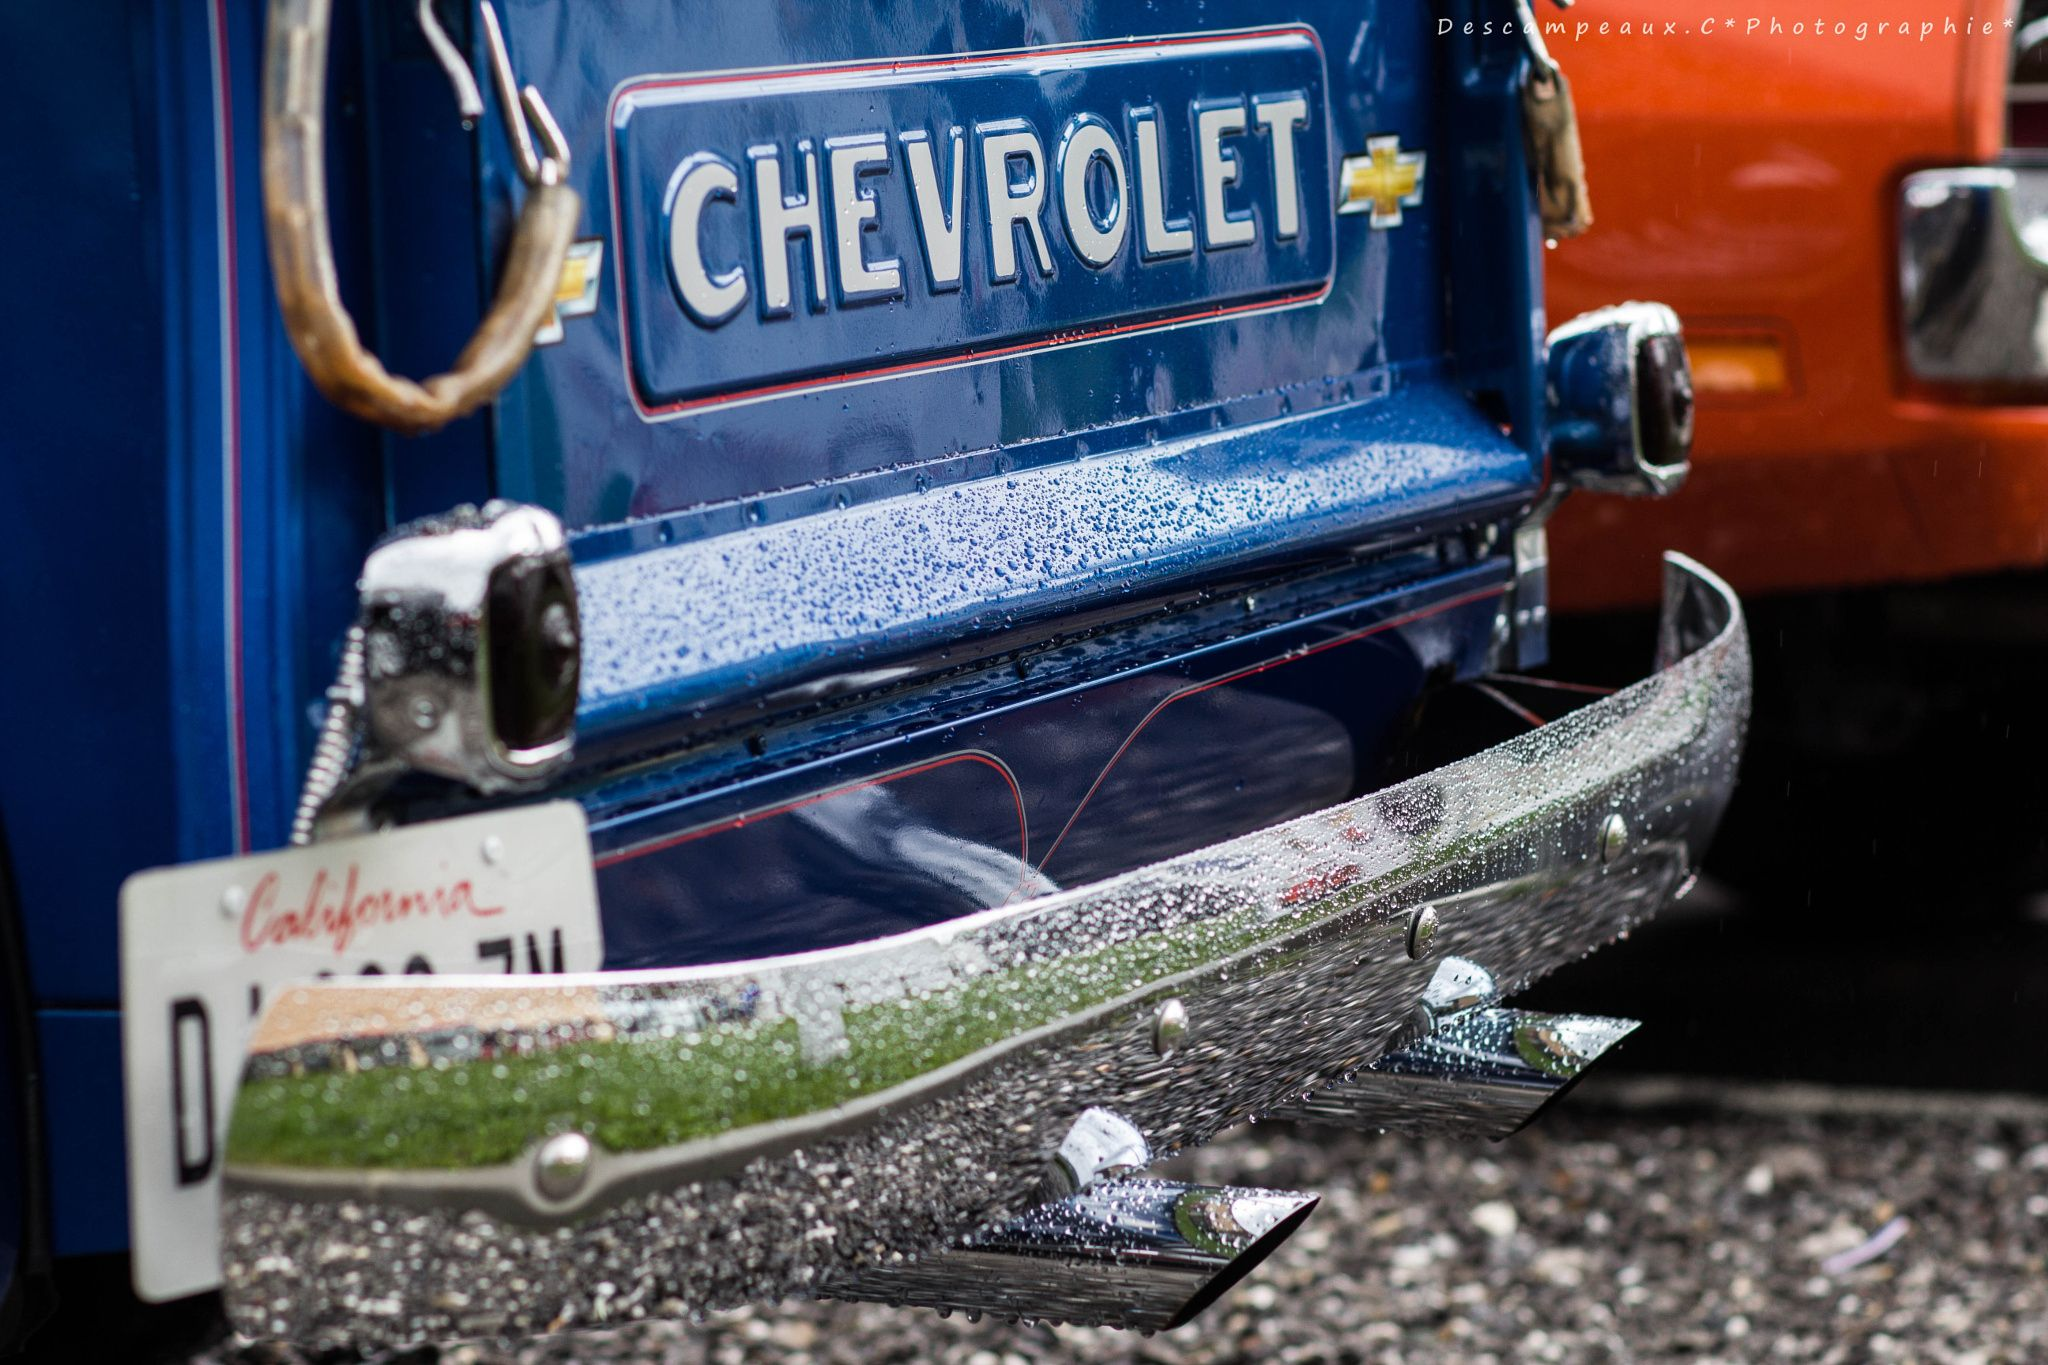 chevrolet by Christophe descampeaux on 500px